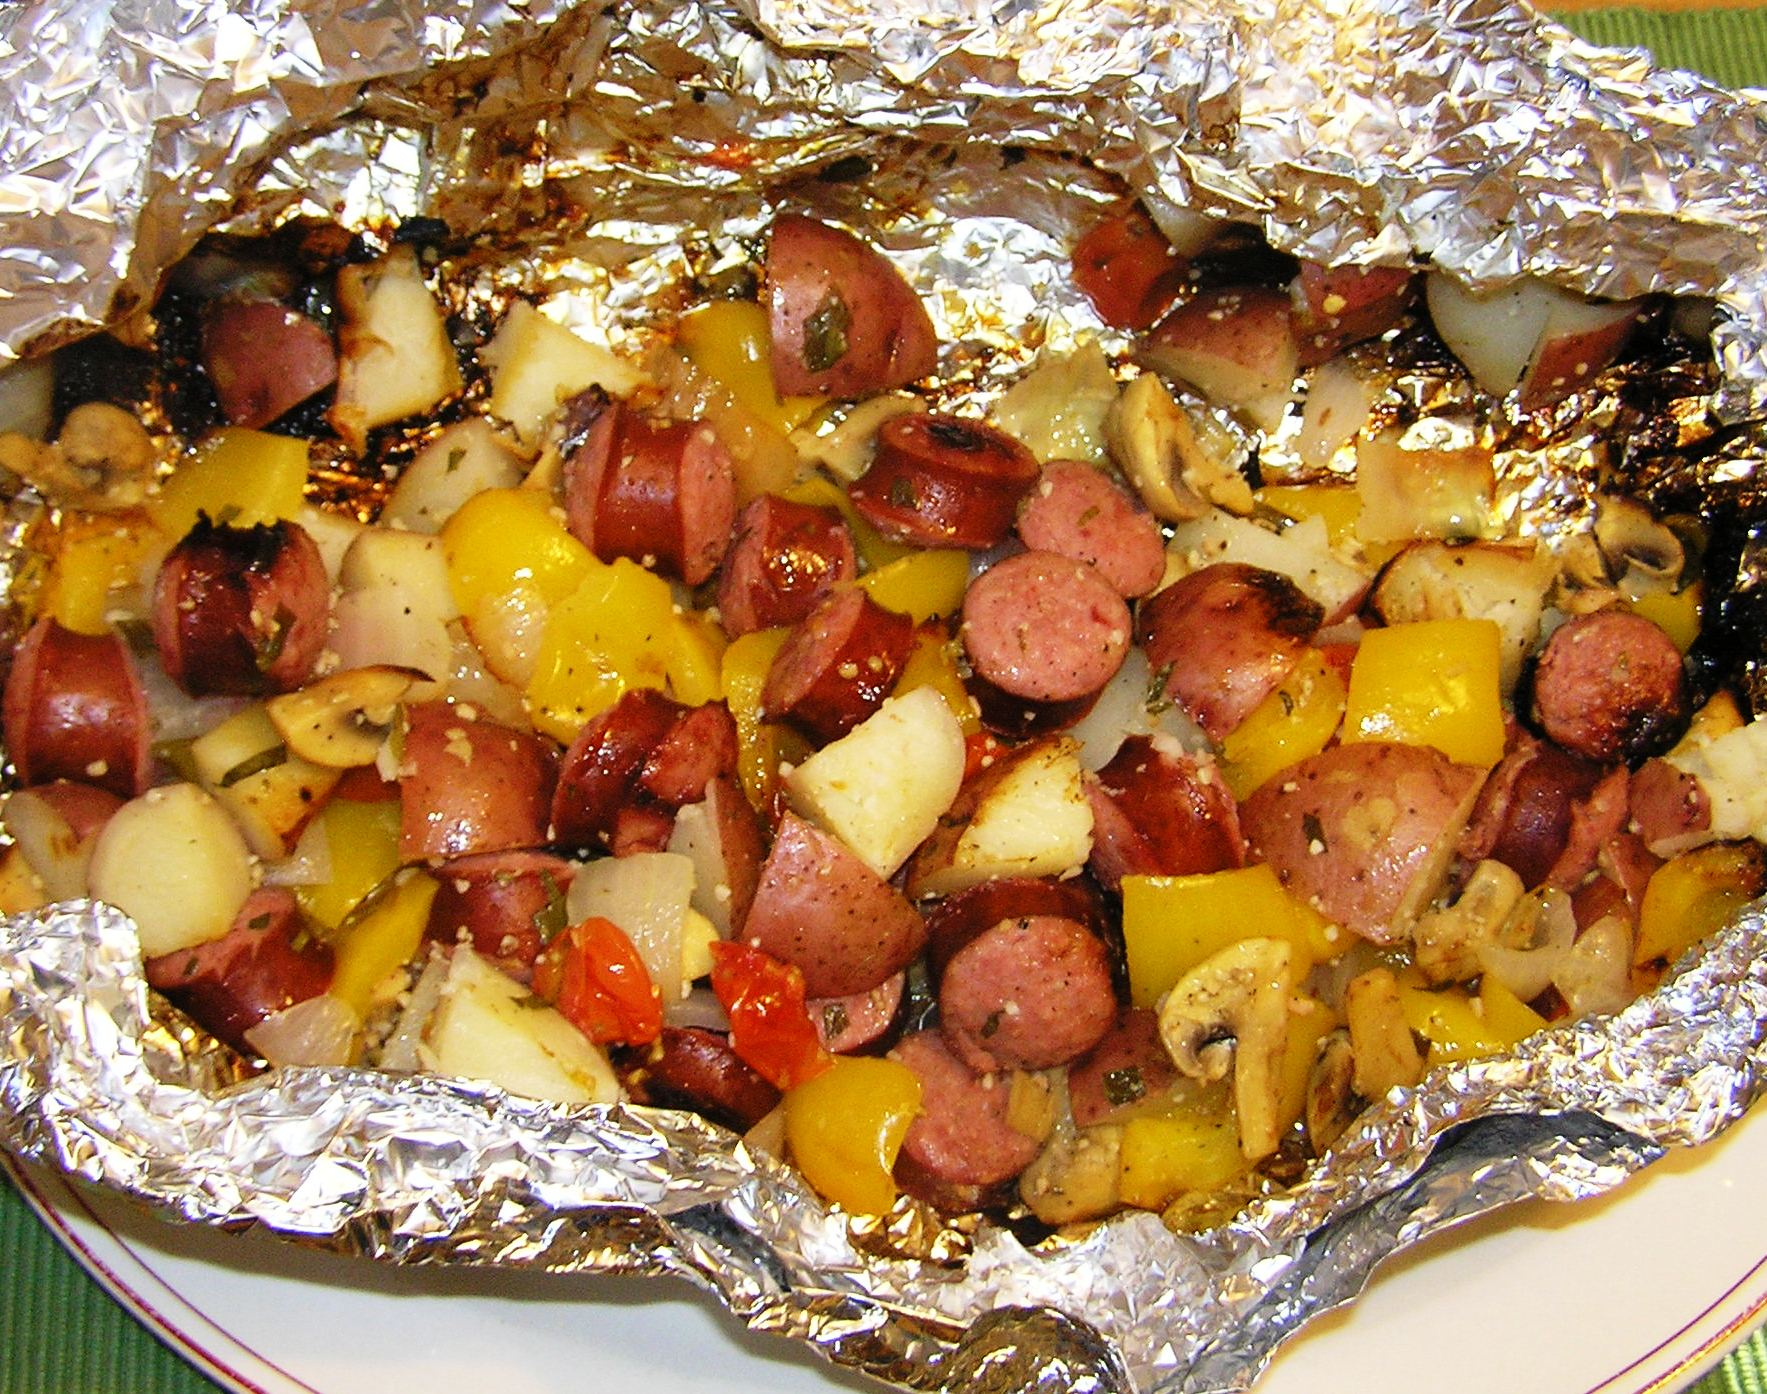 Grilled Sausage and Vegetables in Foil Packet | anotherfoodieblogger